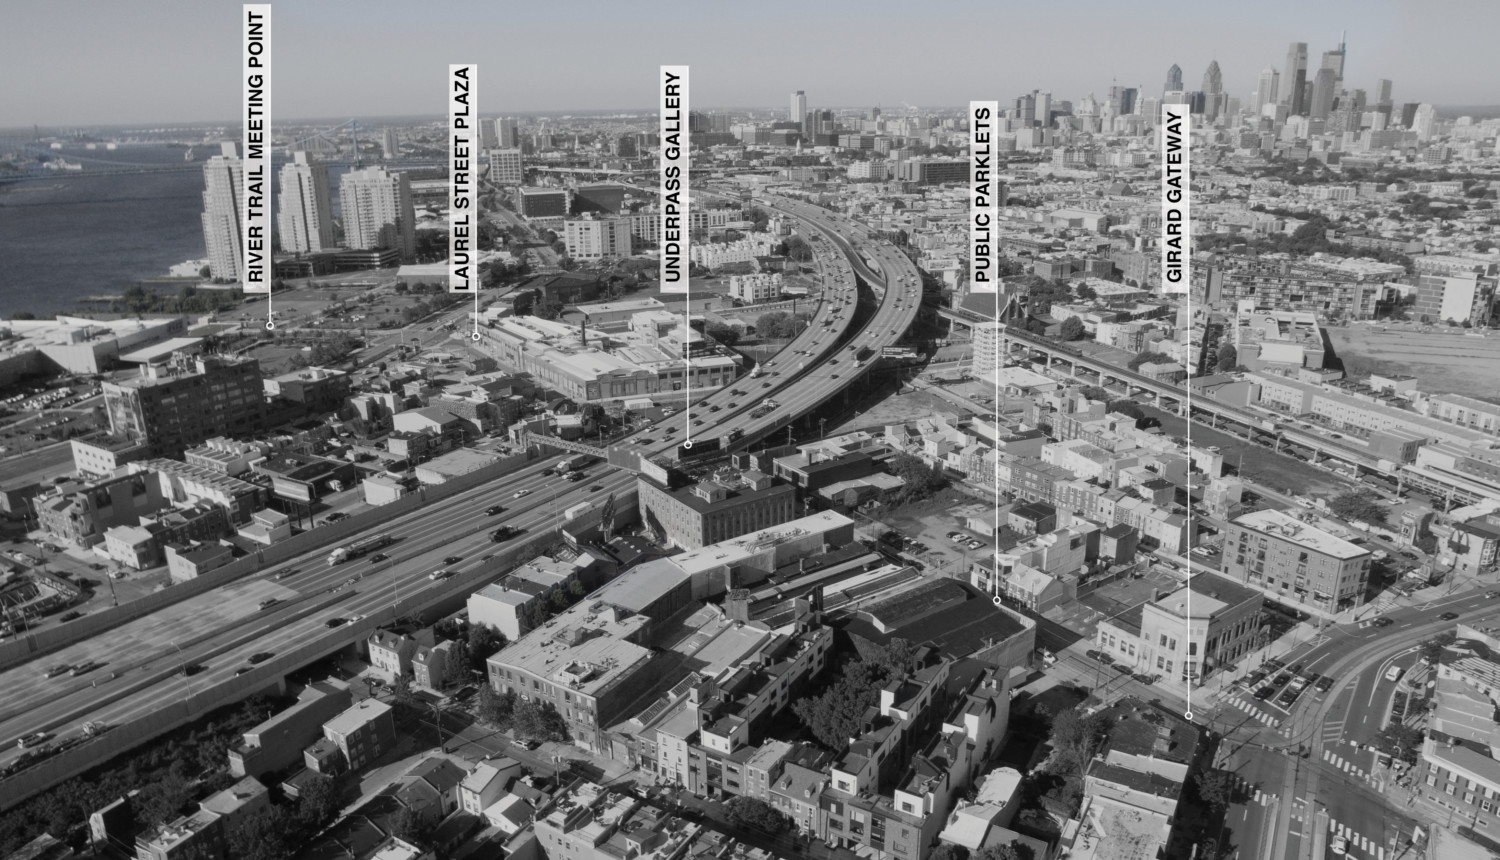 0-2_Overview_Frankford 2019